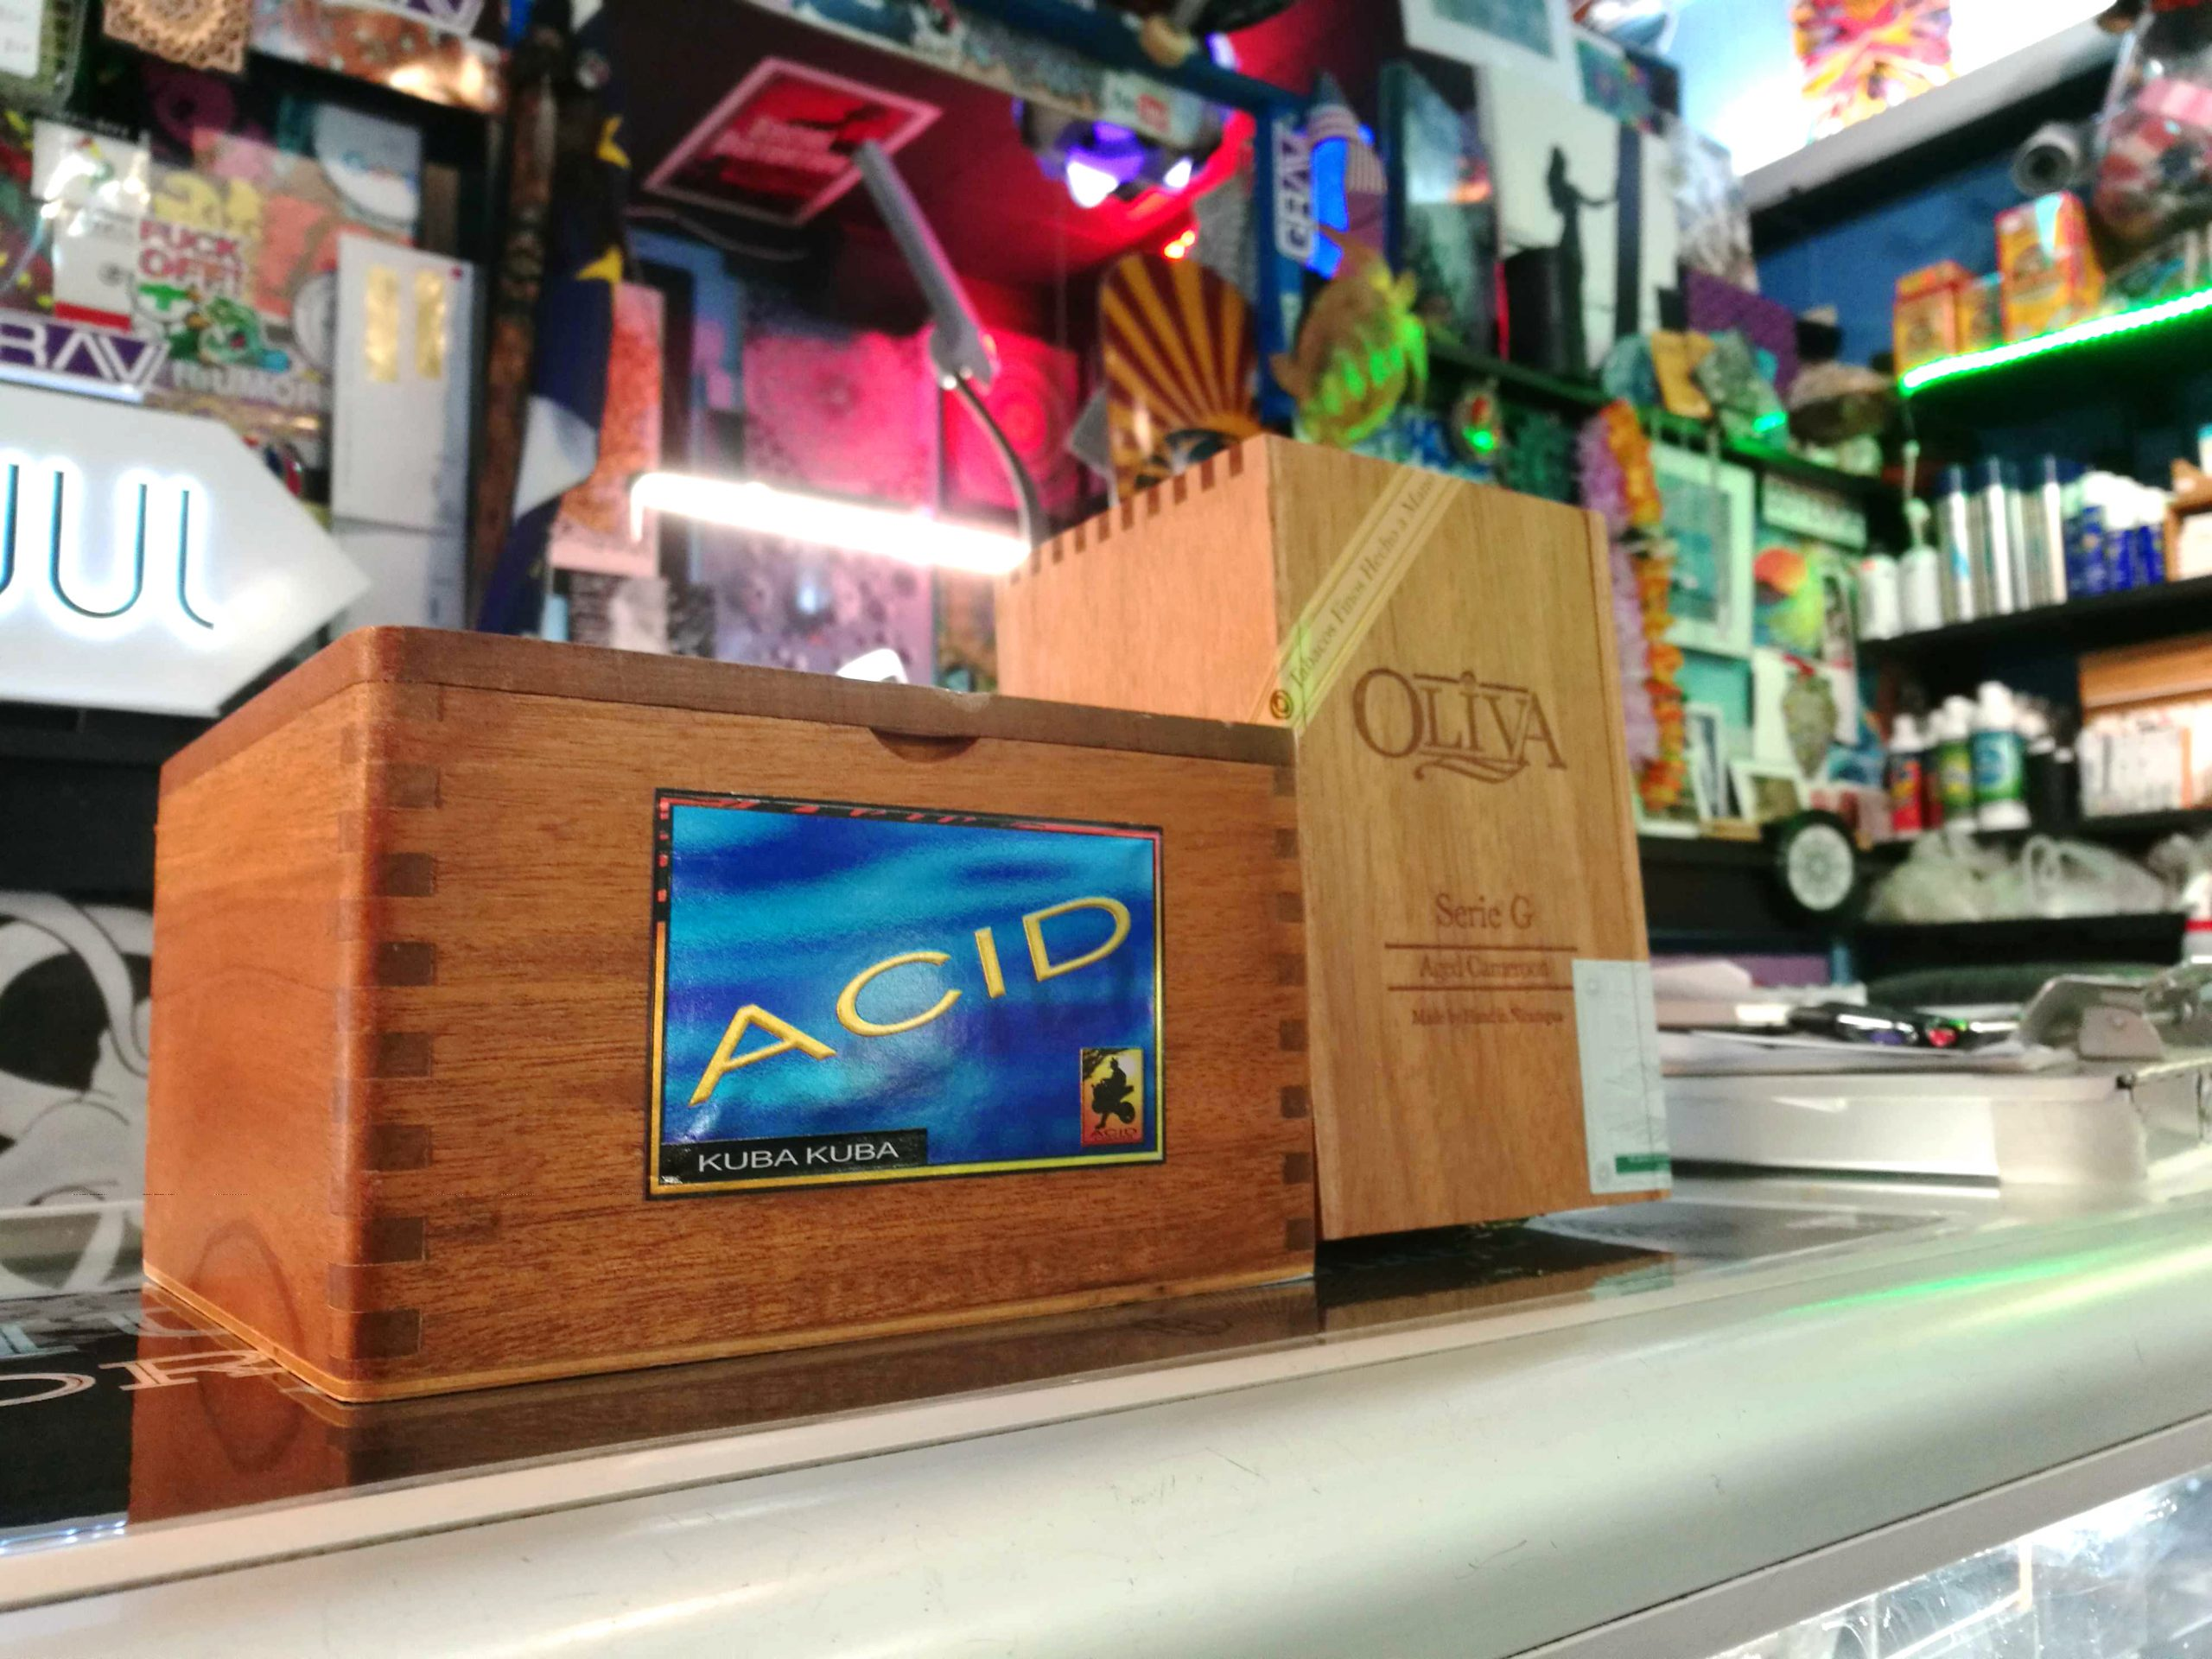 ACID and Olivia cigar boxes